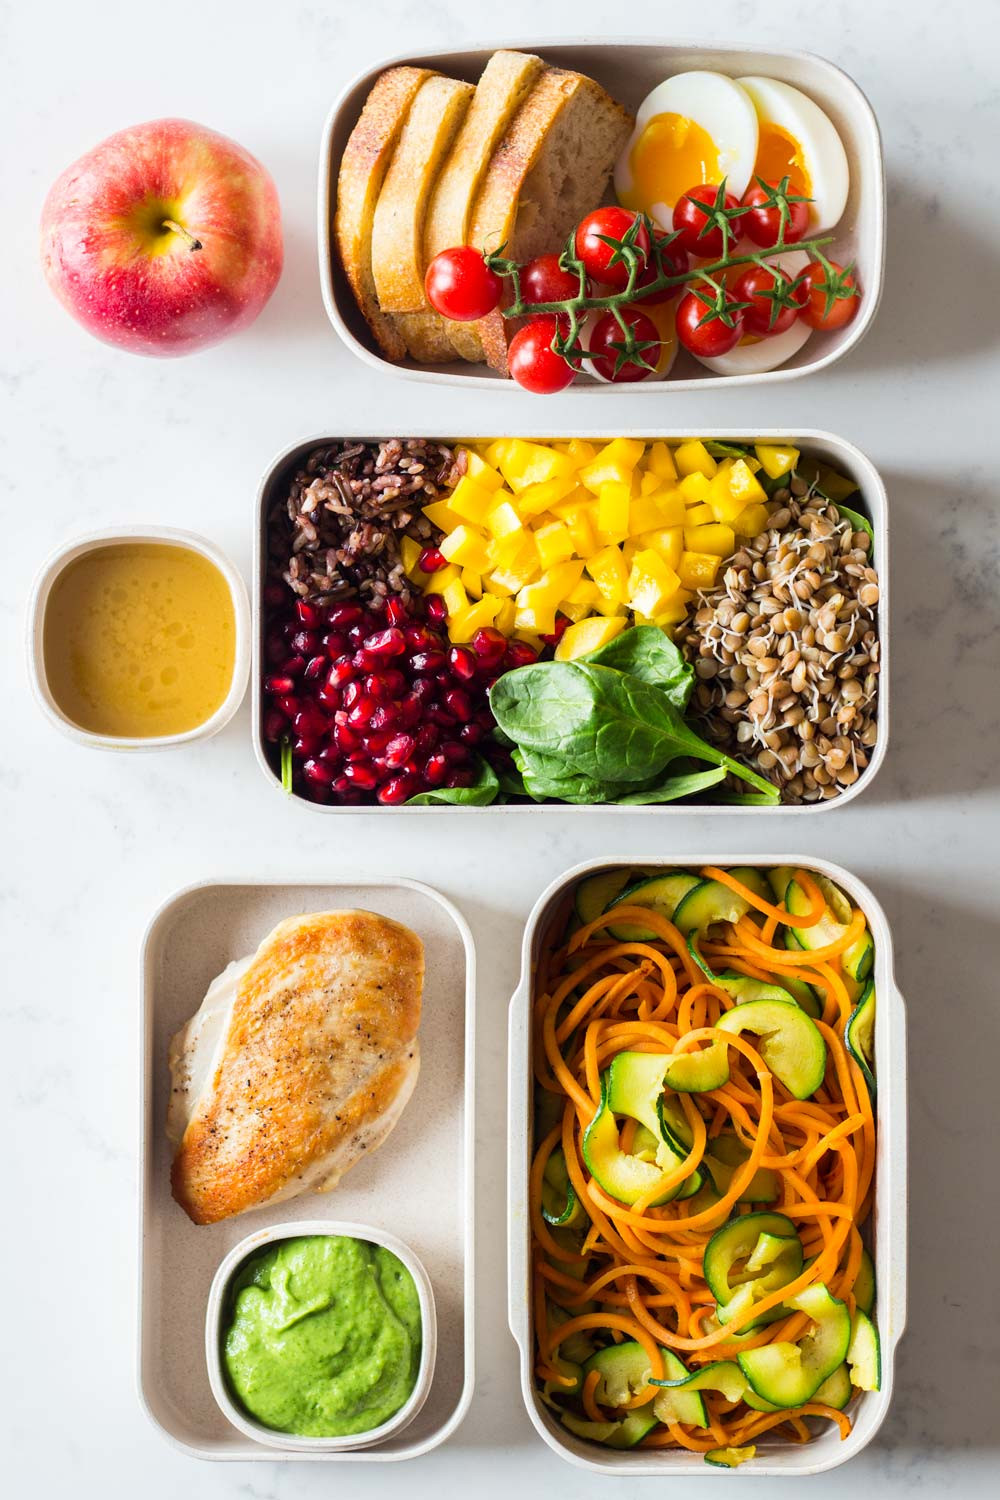 Healthy Clean Dinners  Clean Eating Meal Plan 1 full day prepped in 40 mins